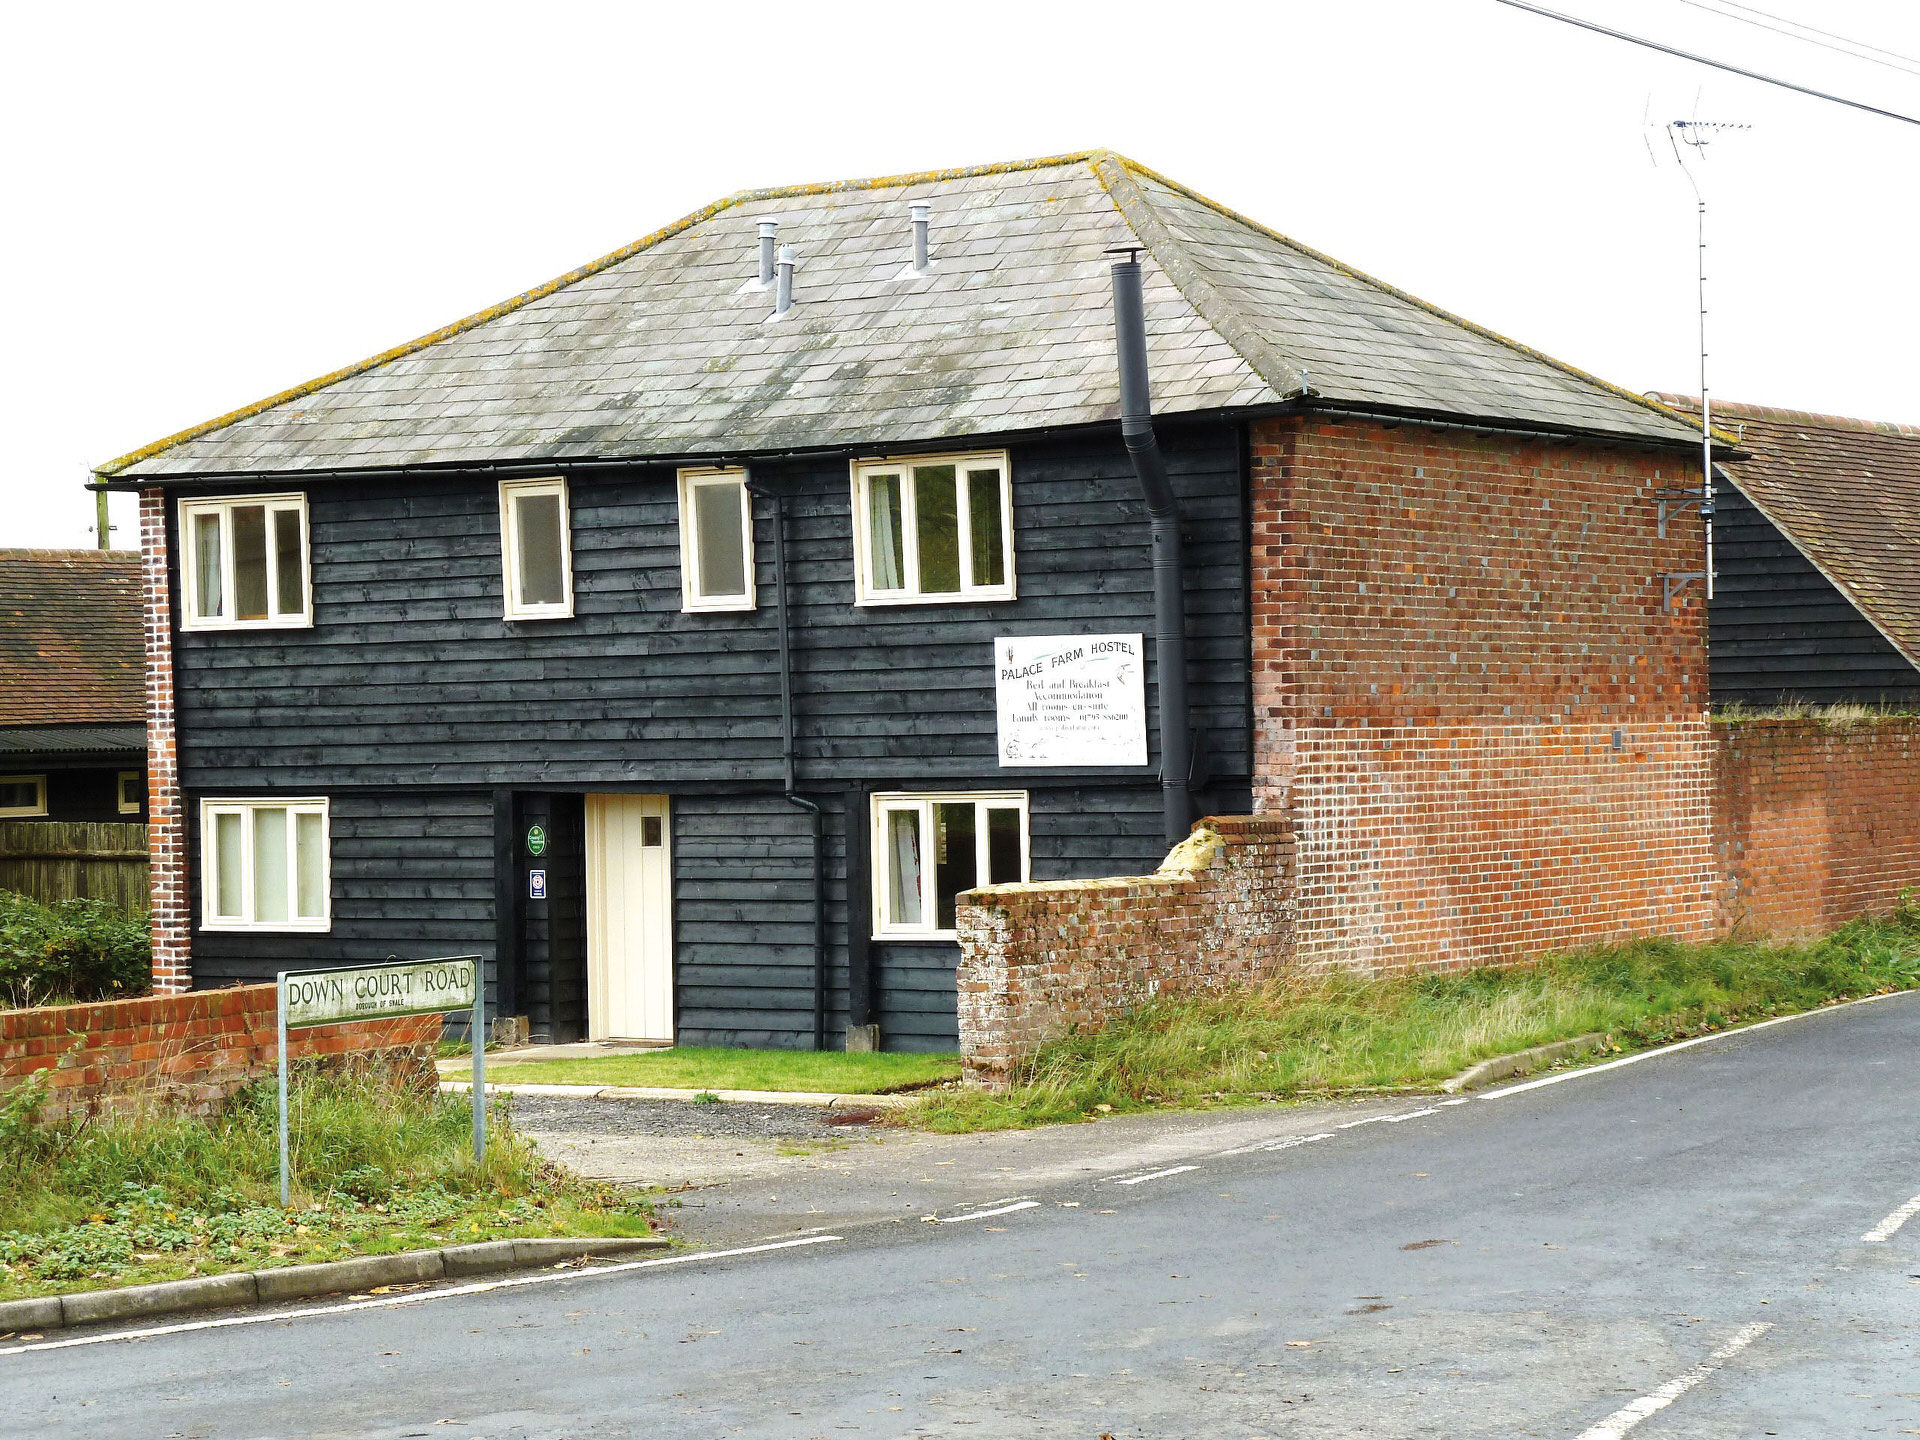 Palace Farm Hostel B&B with self catering